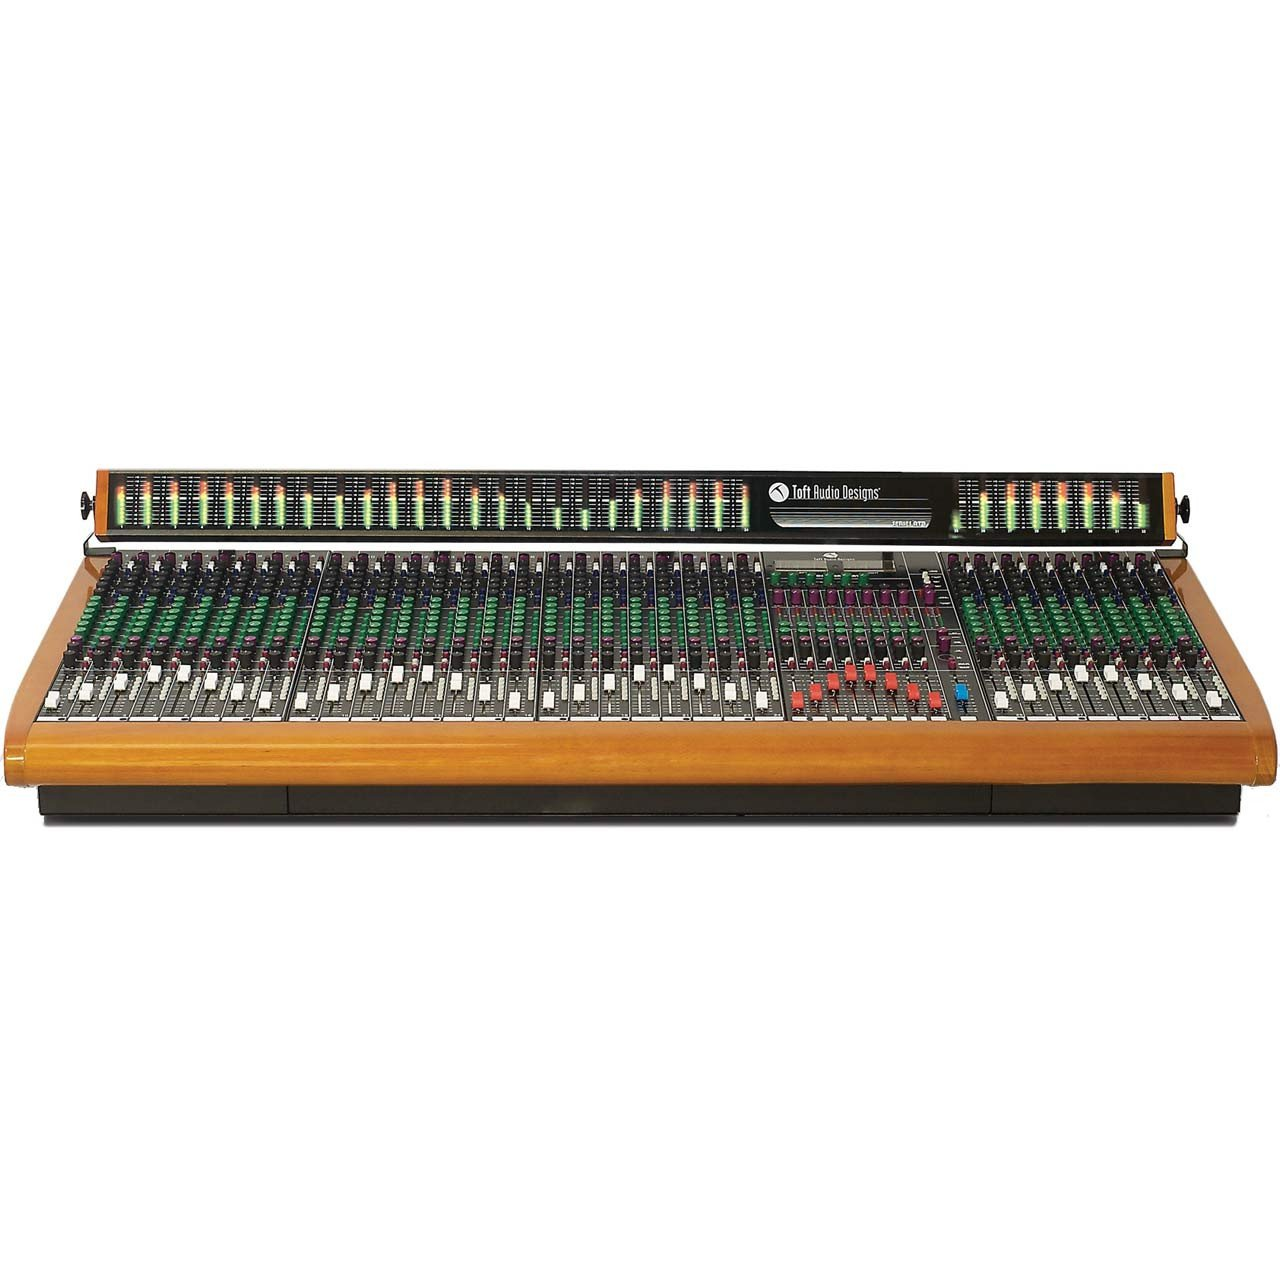 Toft Audio Designs Series ATB32 Console